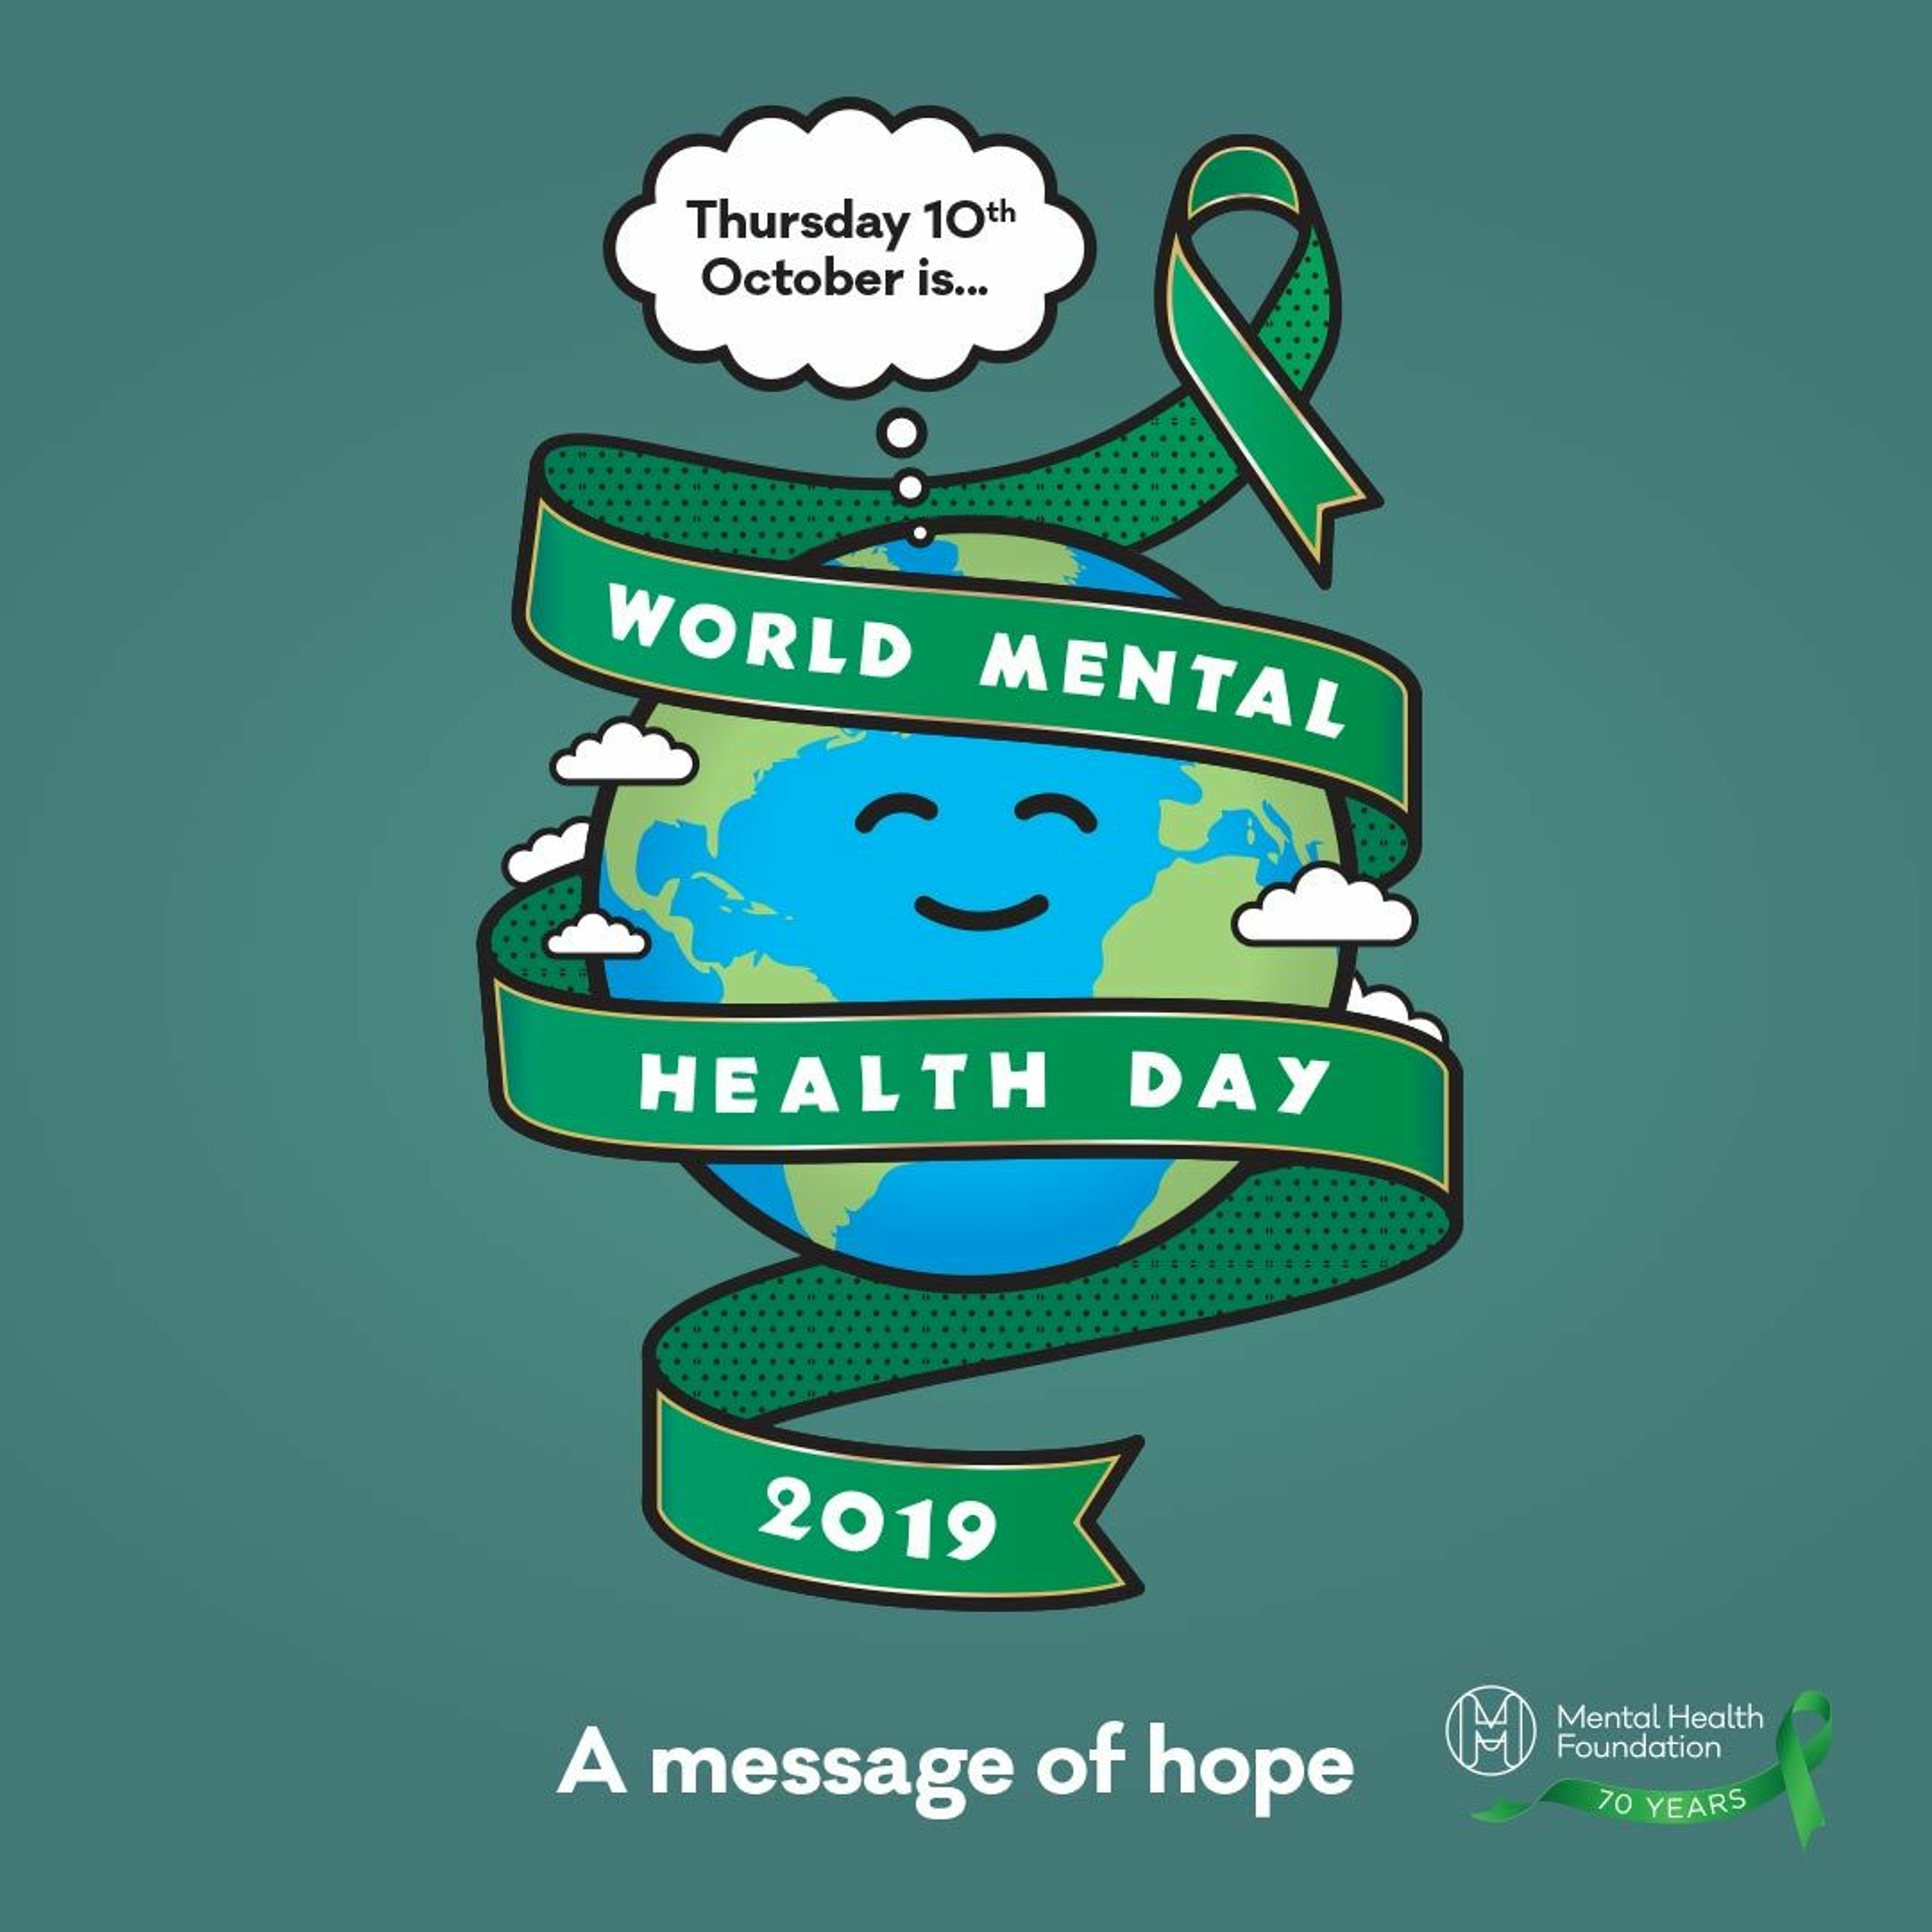 Mental Health Foundation podcast - Let's talk about suicide prevention